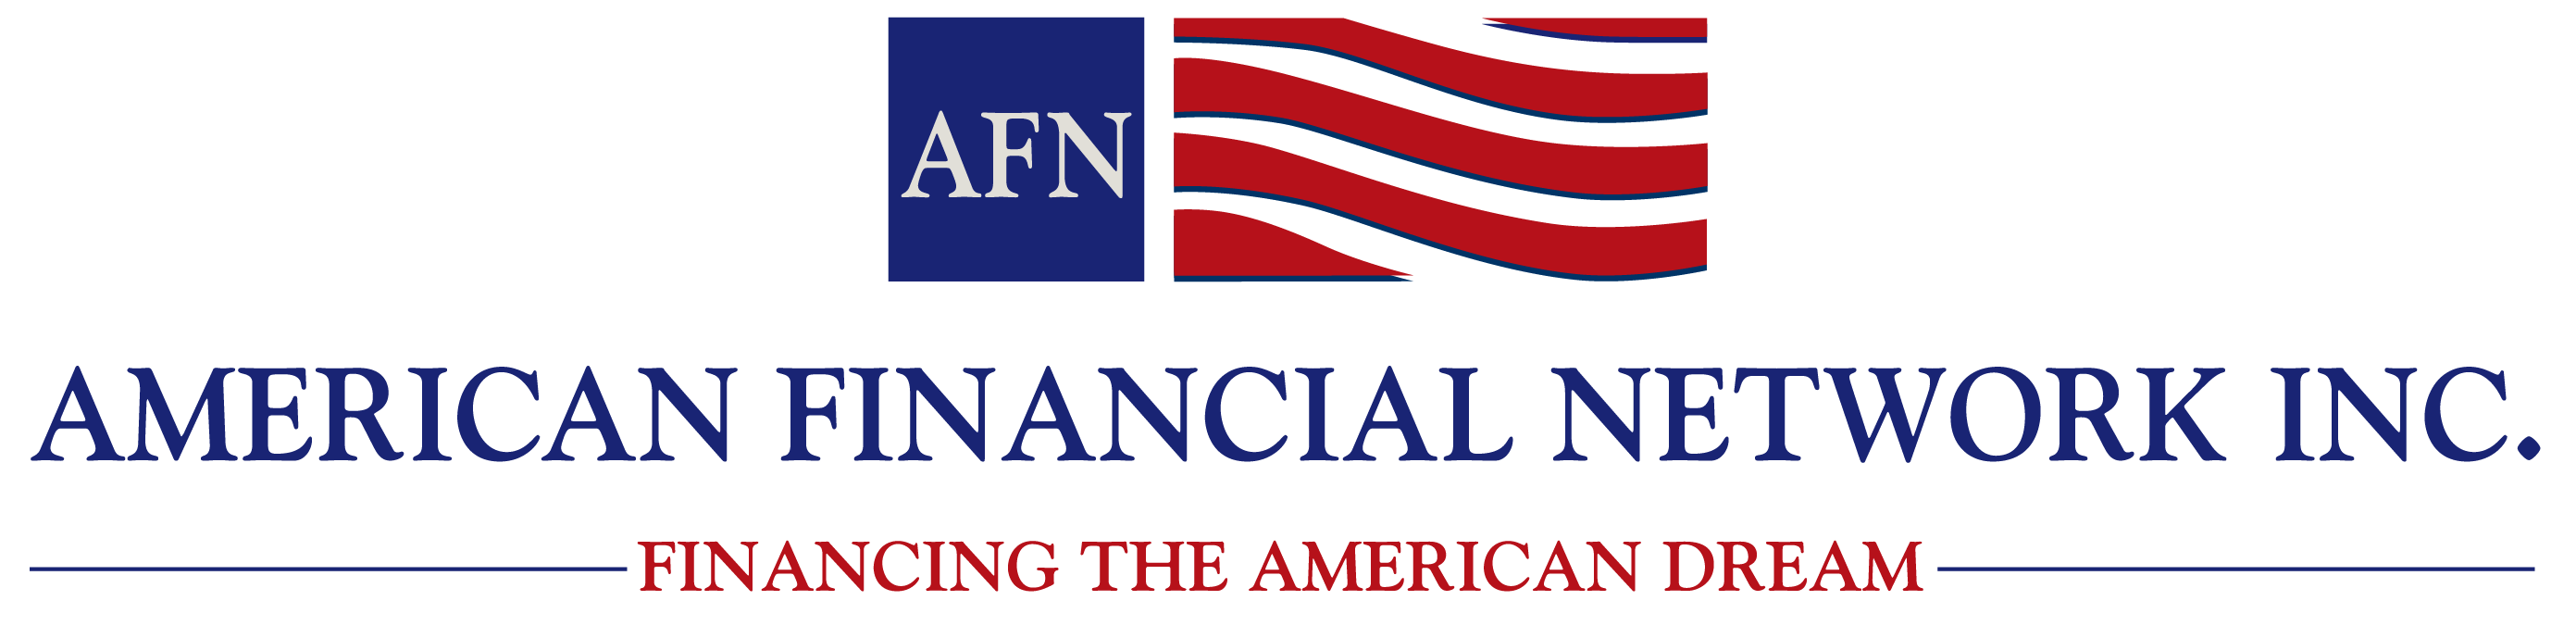 AFN-layout_set_logo